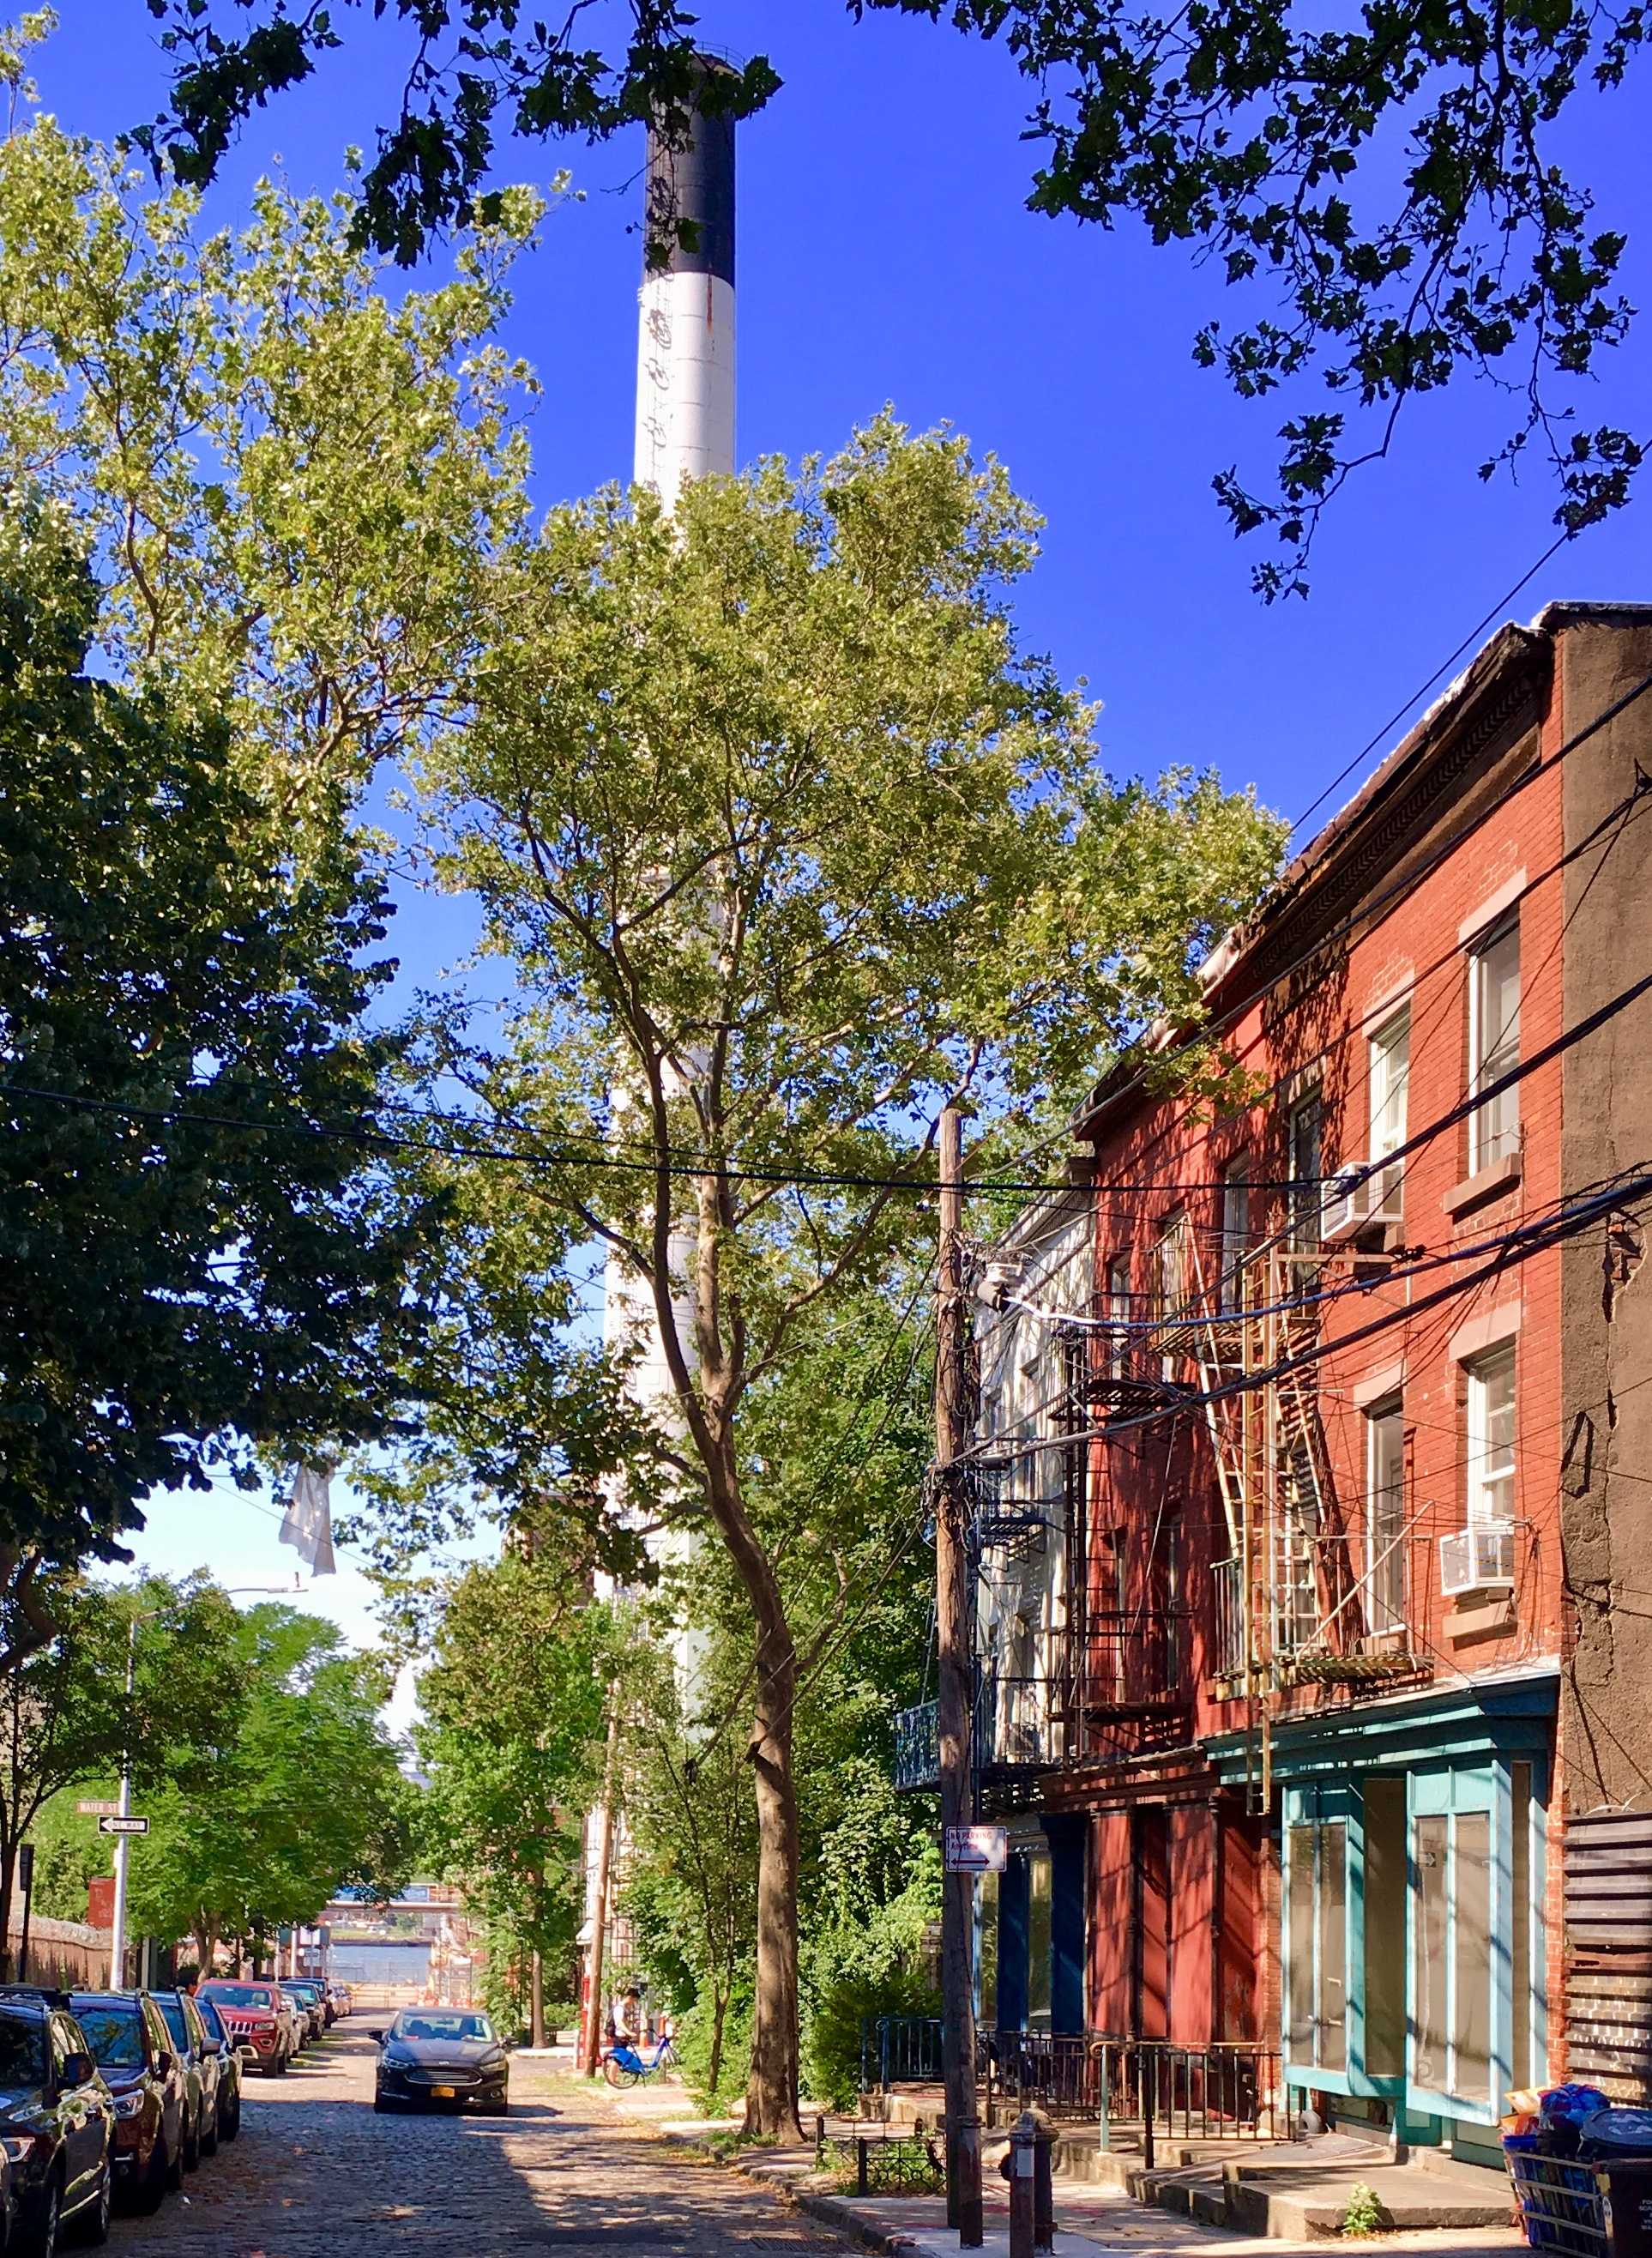 These Hudson Avenue rowhouses were built in 1817. Eagle photo by Lore Croghan